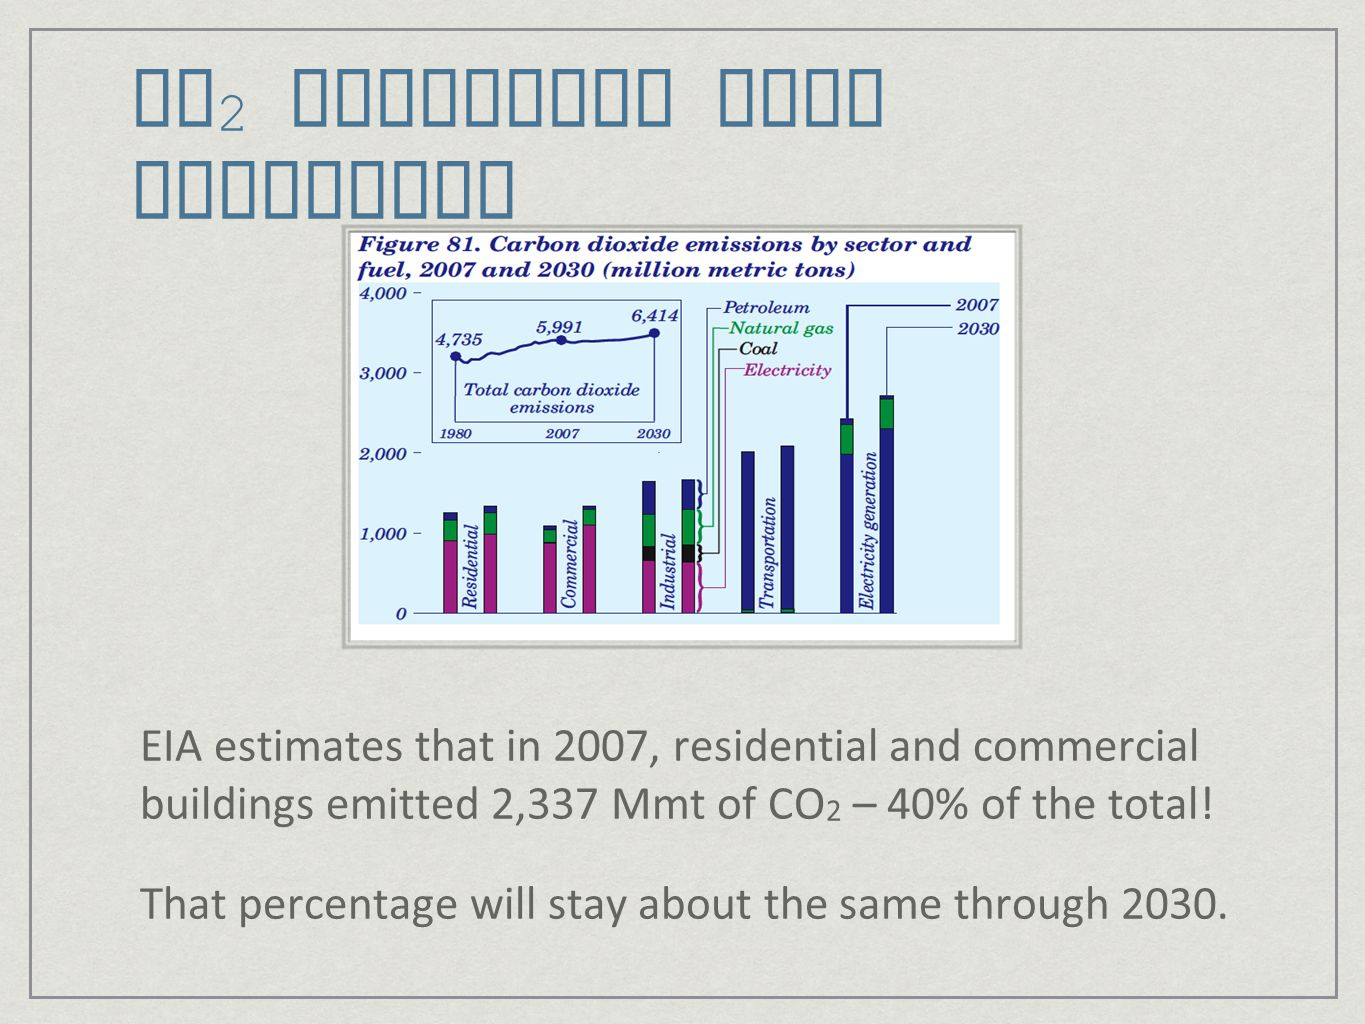 CO2 Emissions from Buildings